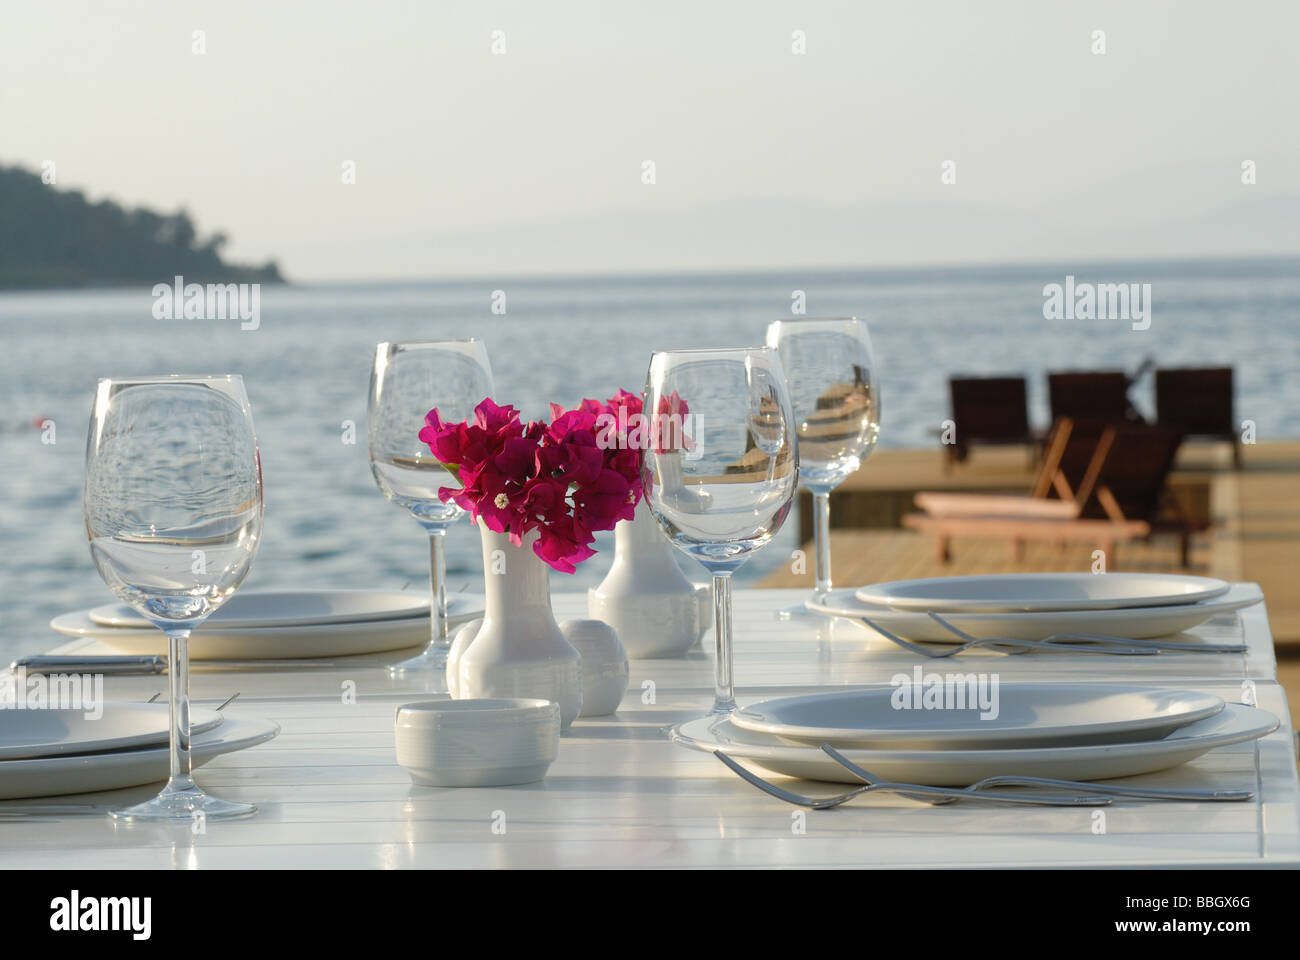 Fancy restaurant table setting - Stock Photo Dinner Table And Nice Place Setting At The Beach Restaurant